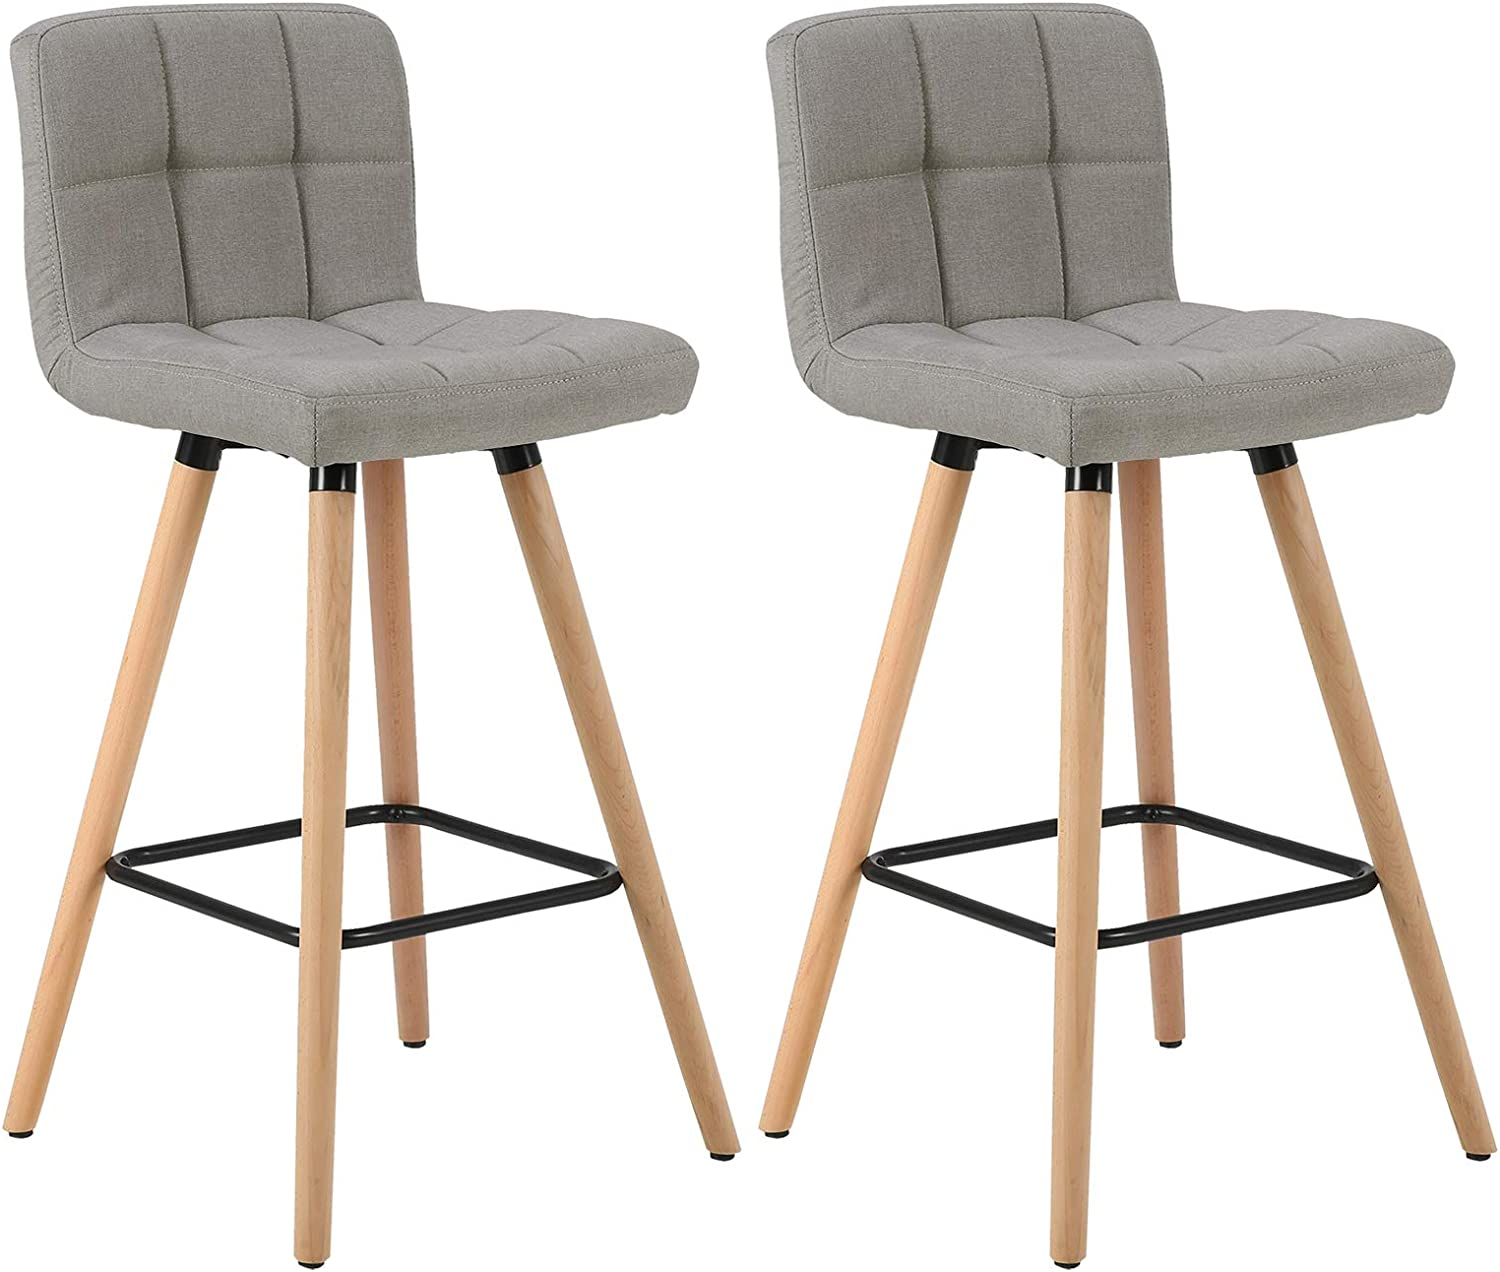 WOLTU Bar Stools Set of 9 PCS Soft Linen Seat Bar Chairs Breakfast Kitchen  Counter Chairs Solid Wood Legs Barstools Light Grey High Stools with ...